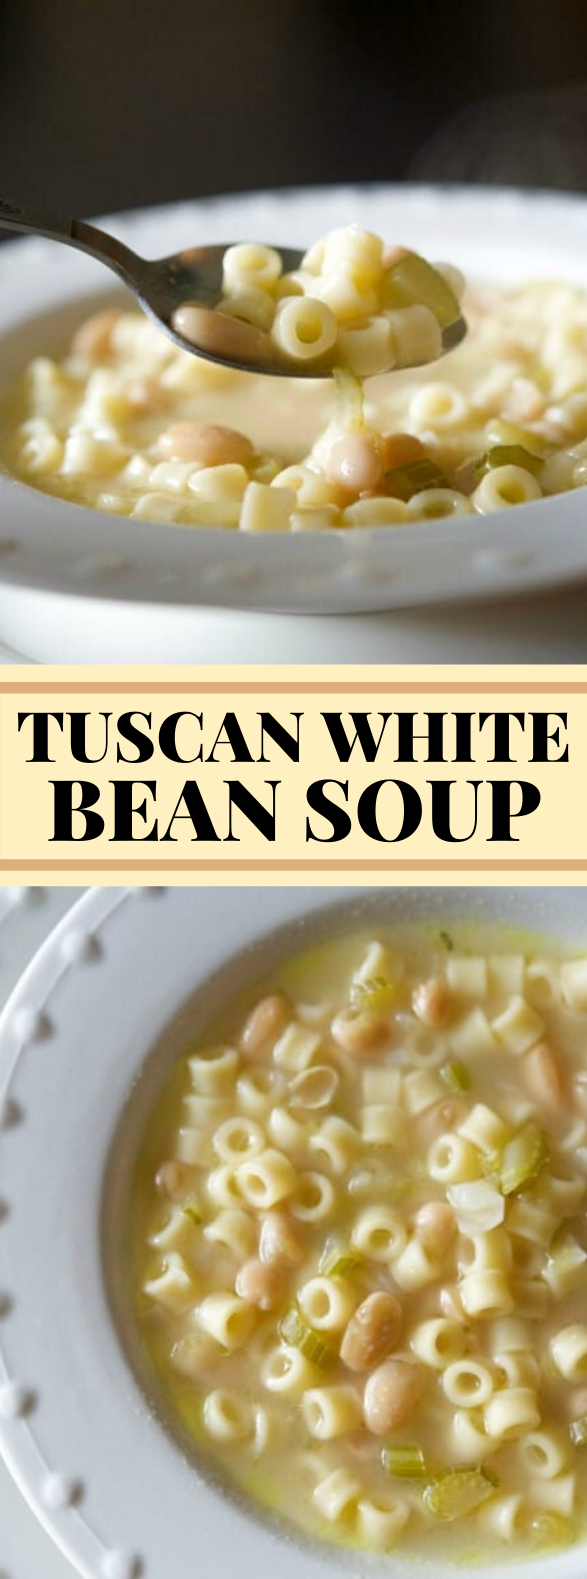 Tuscan White Bean Soup #vegetarian #healthy